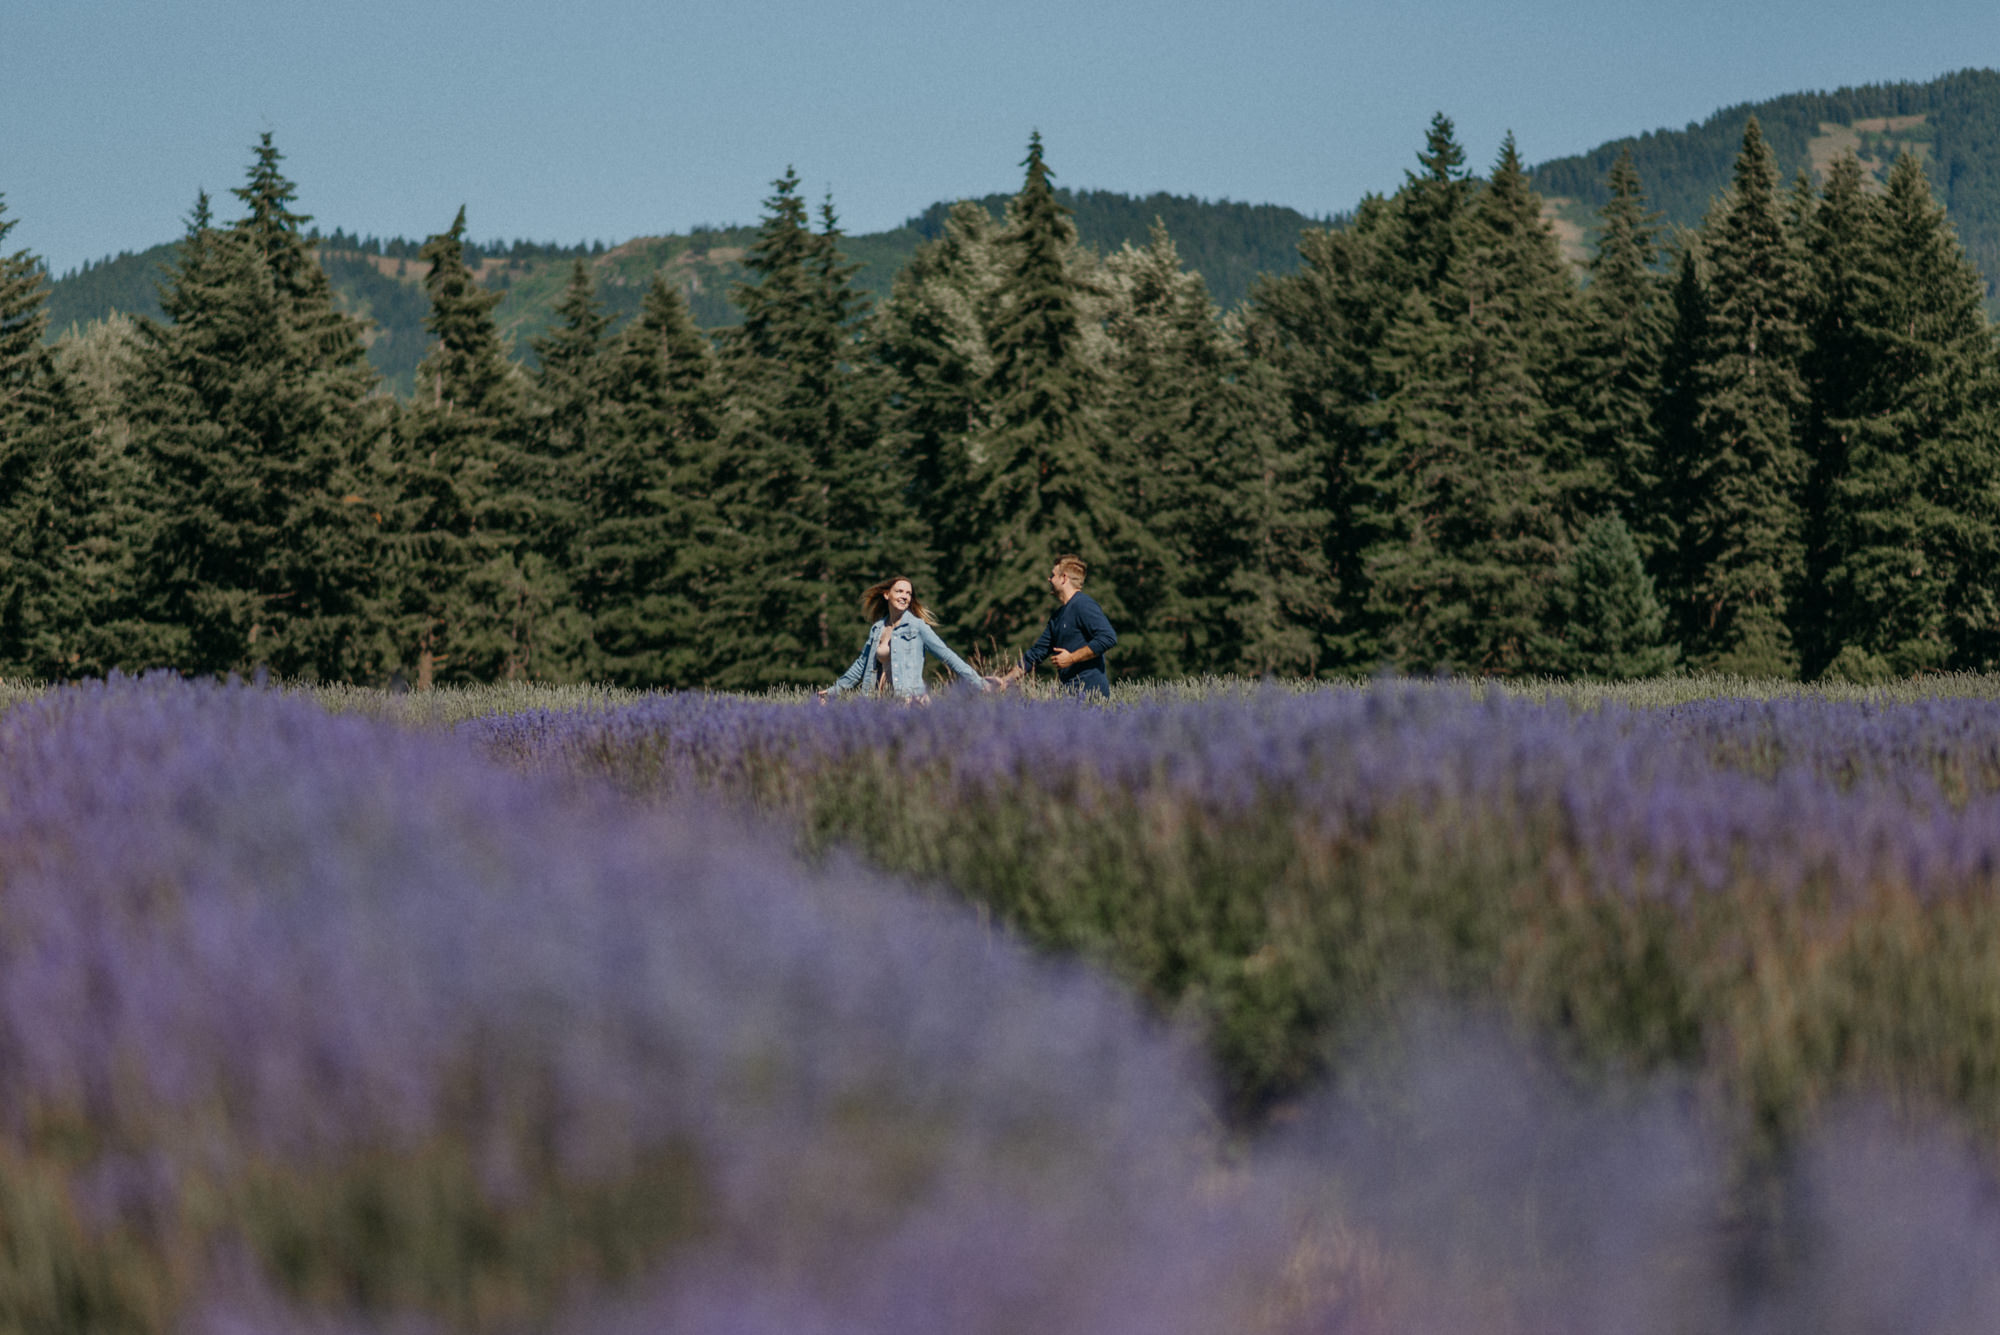 21-Mt-hood-lavender-farms-engagment-couple-summer-7561.jpg